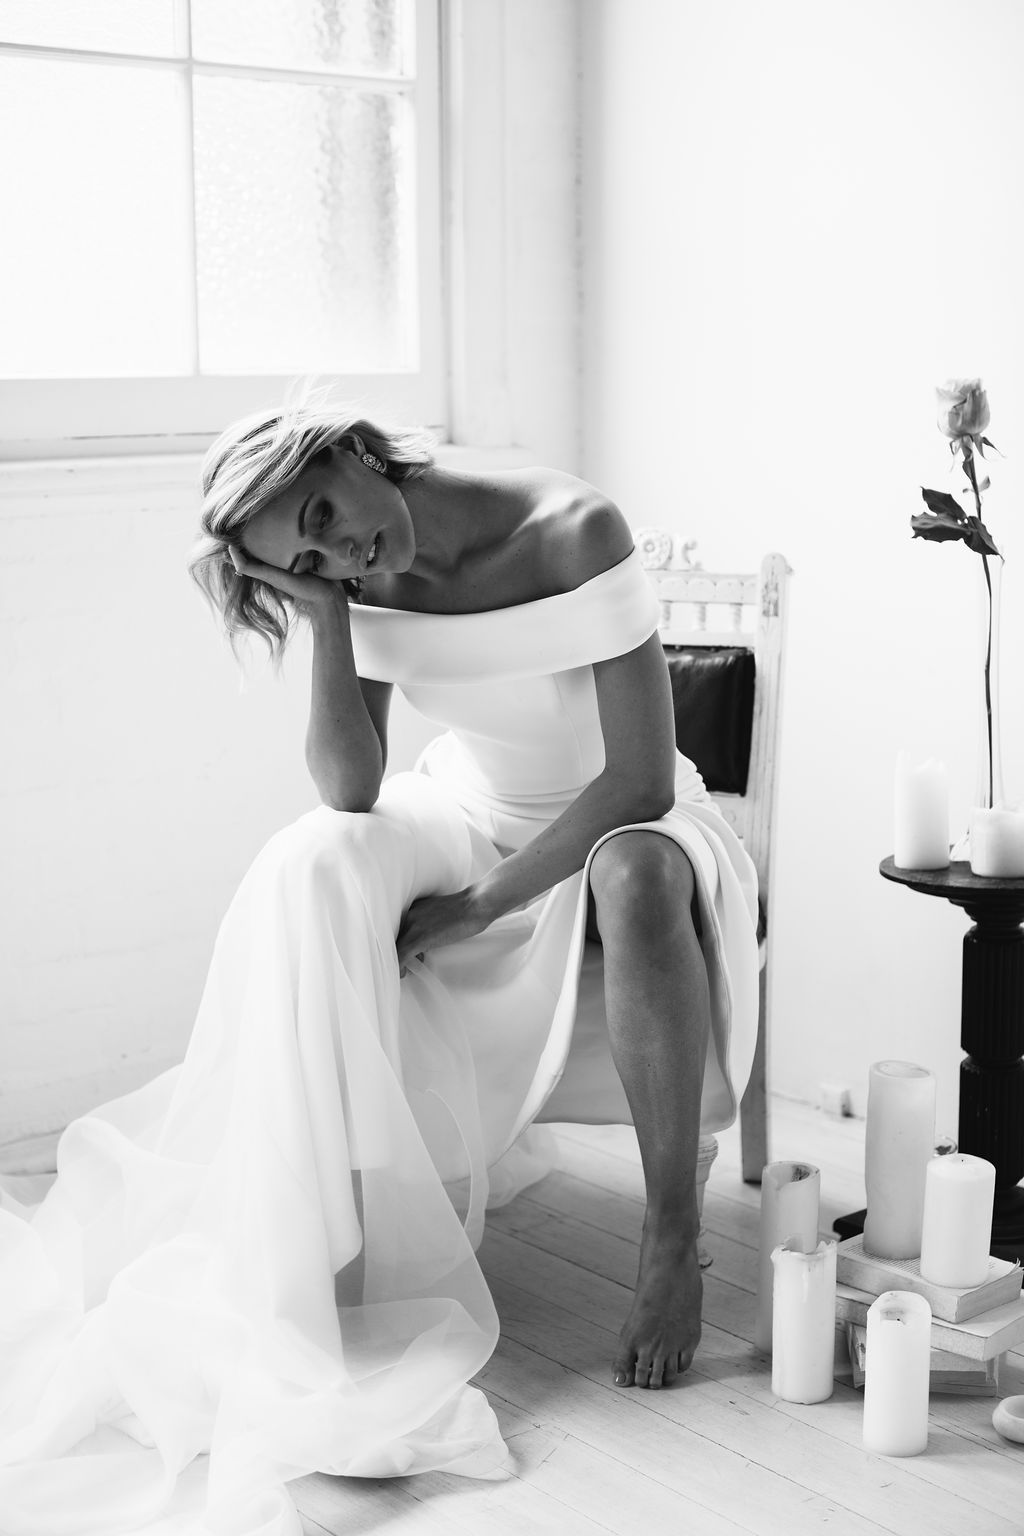 Black and white only bride before wedding on chair moody fashion wedding photography for Amelie George Campaign